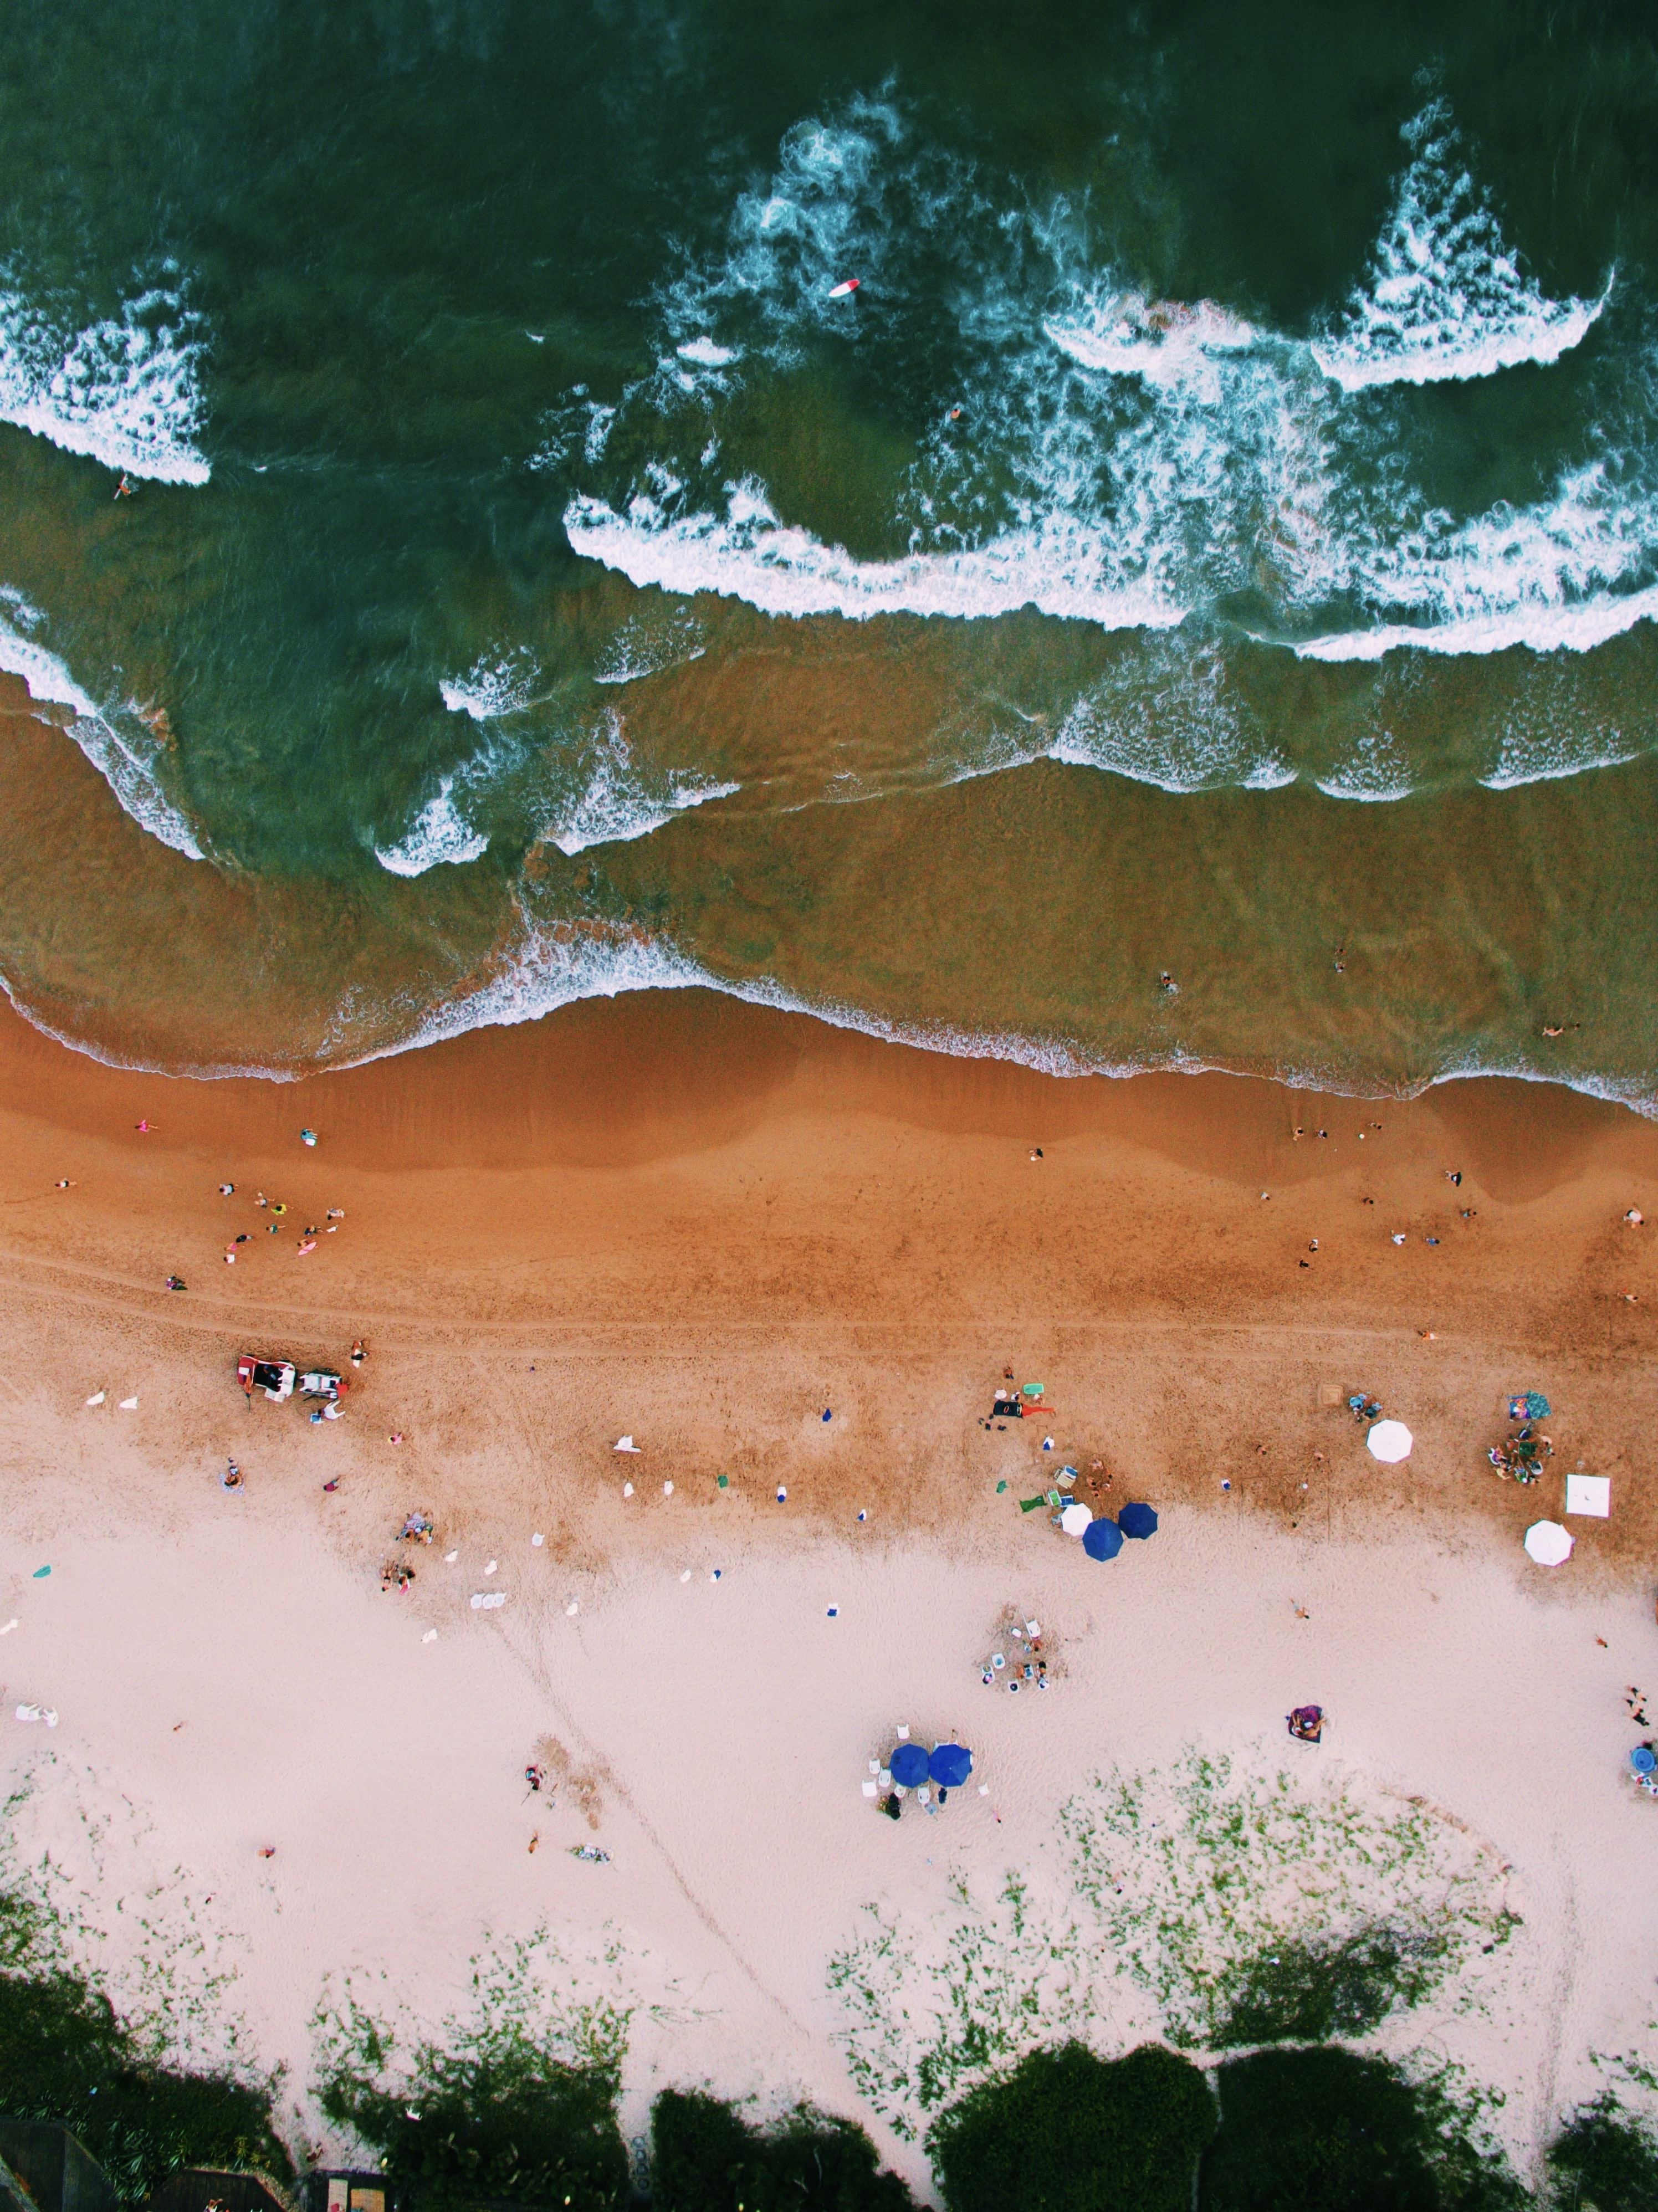 aerial view of people with umbrella near coastline